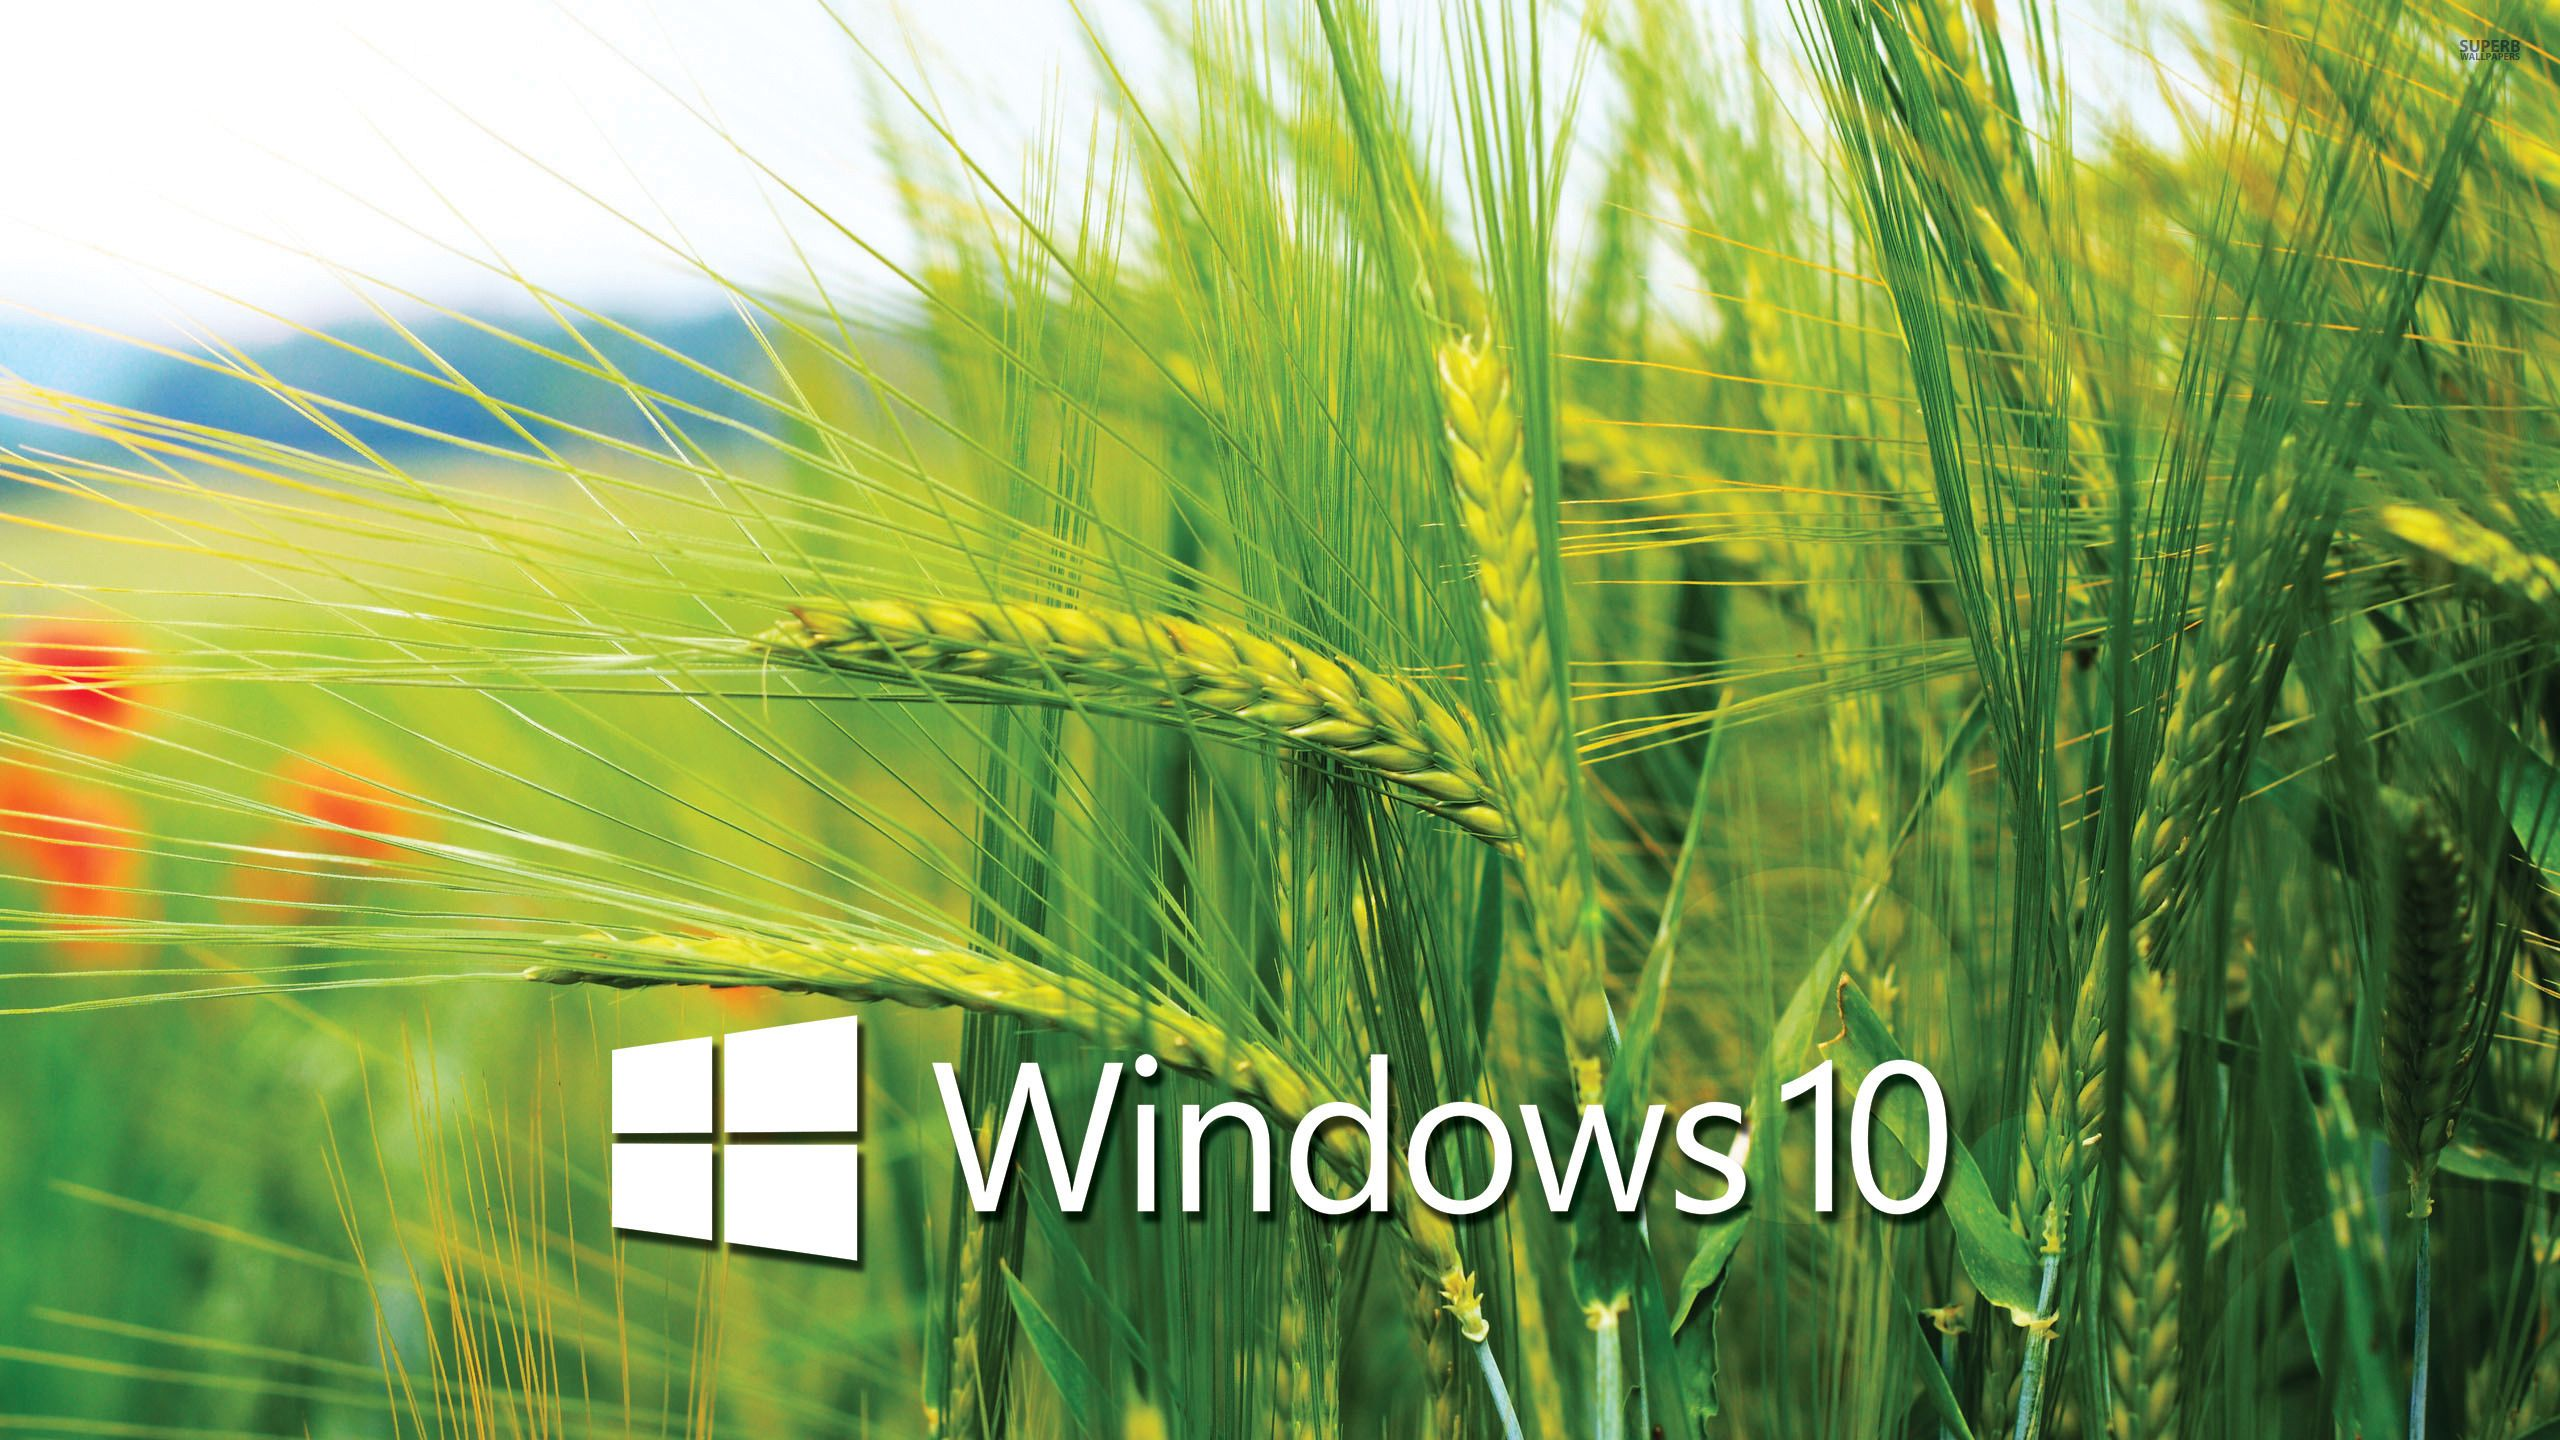 windows 10 background hd